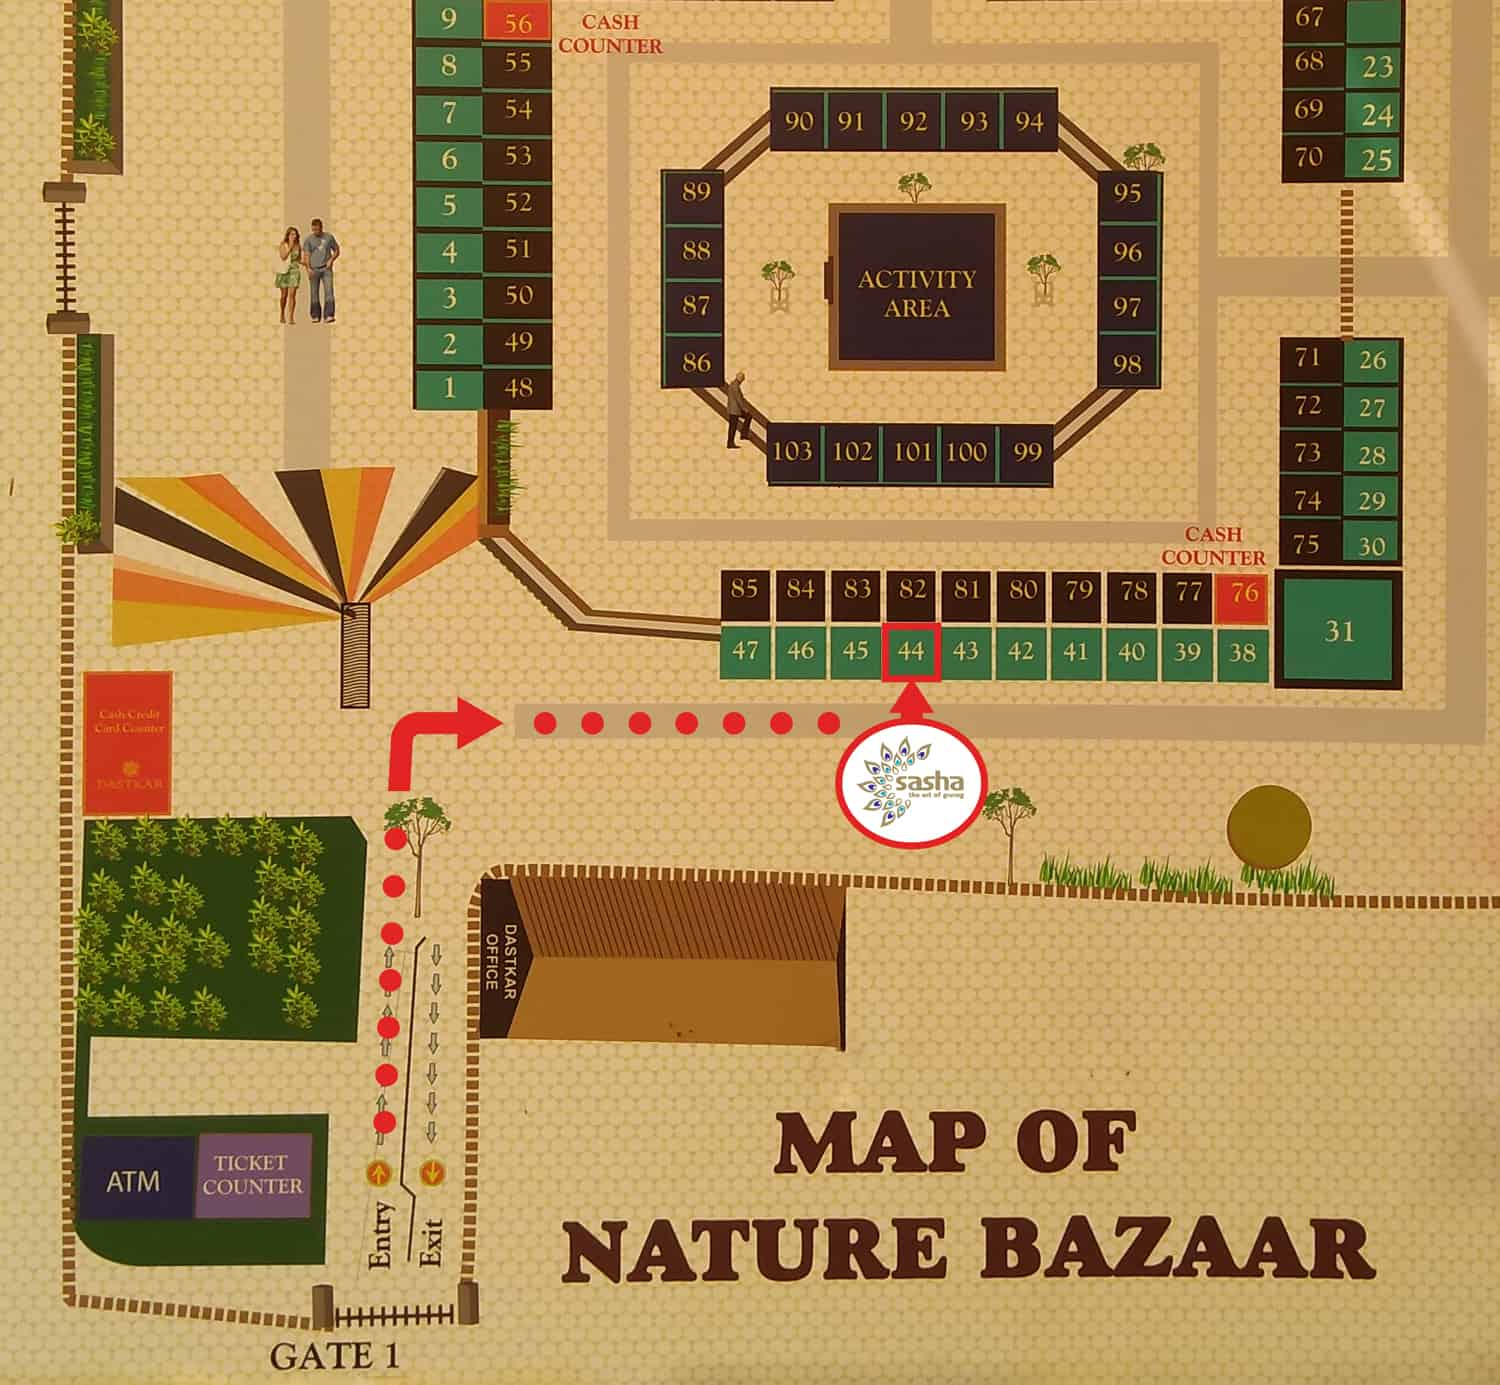 Nature Bazaar sitemap with directions to Sasha